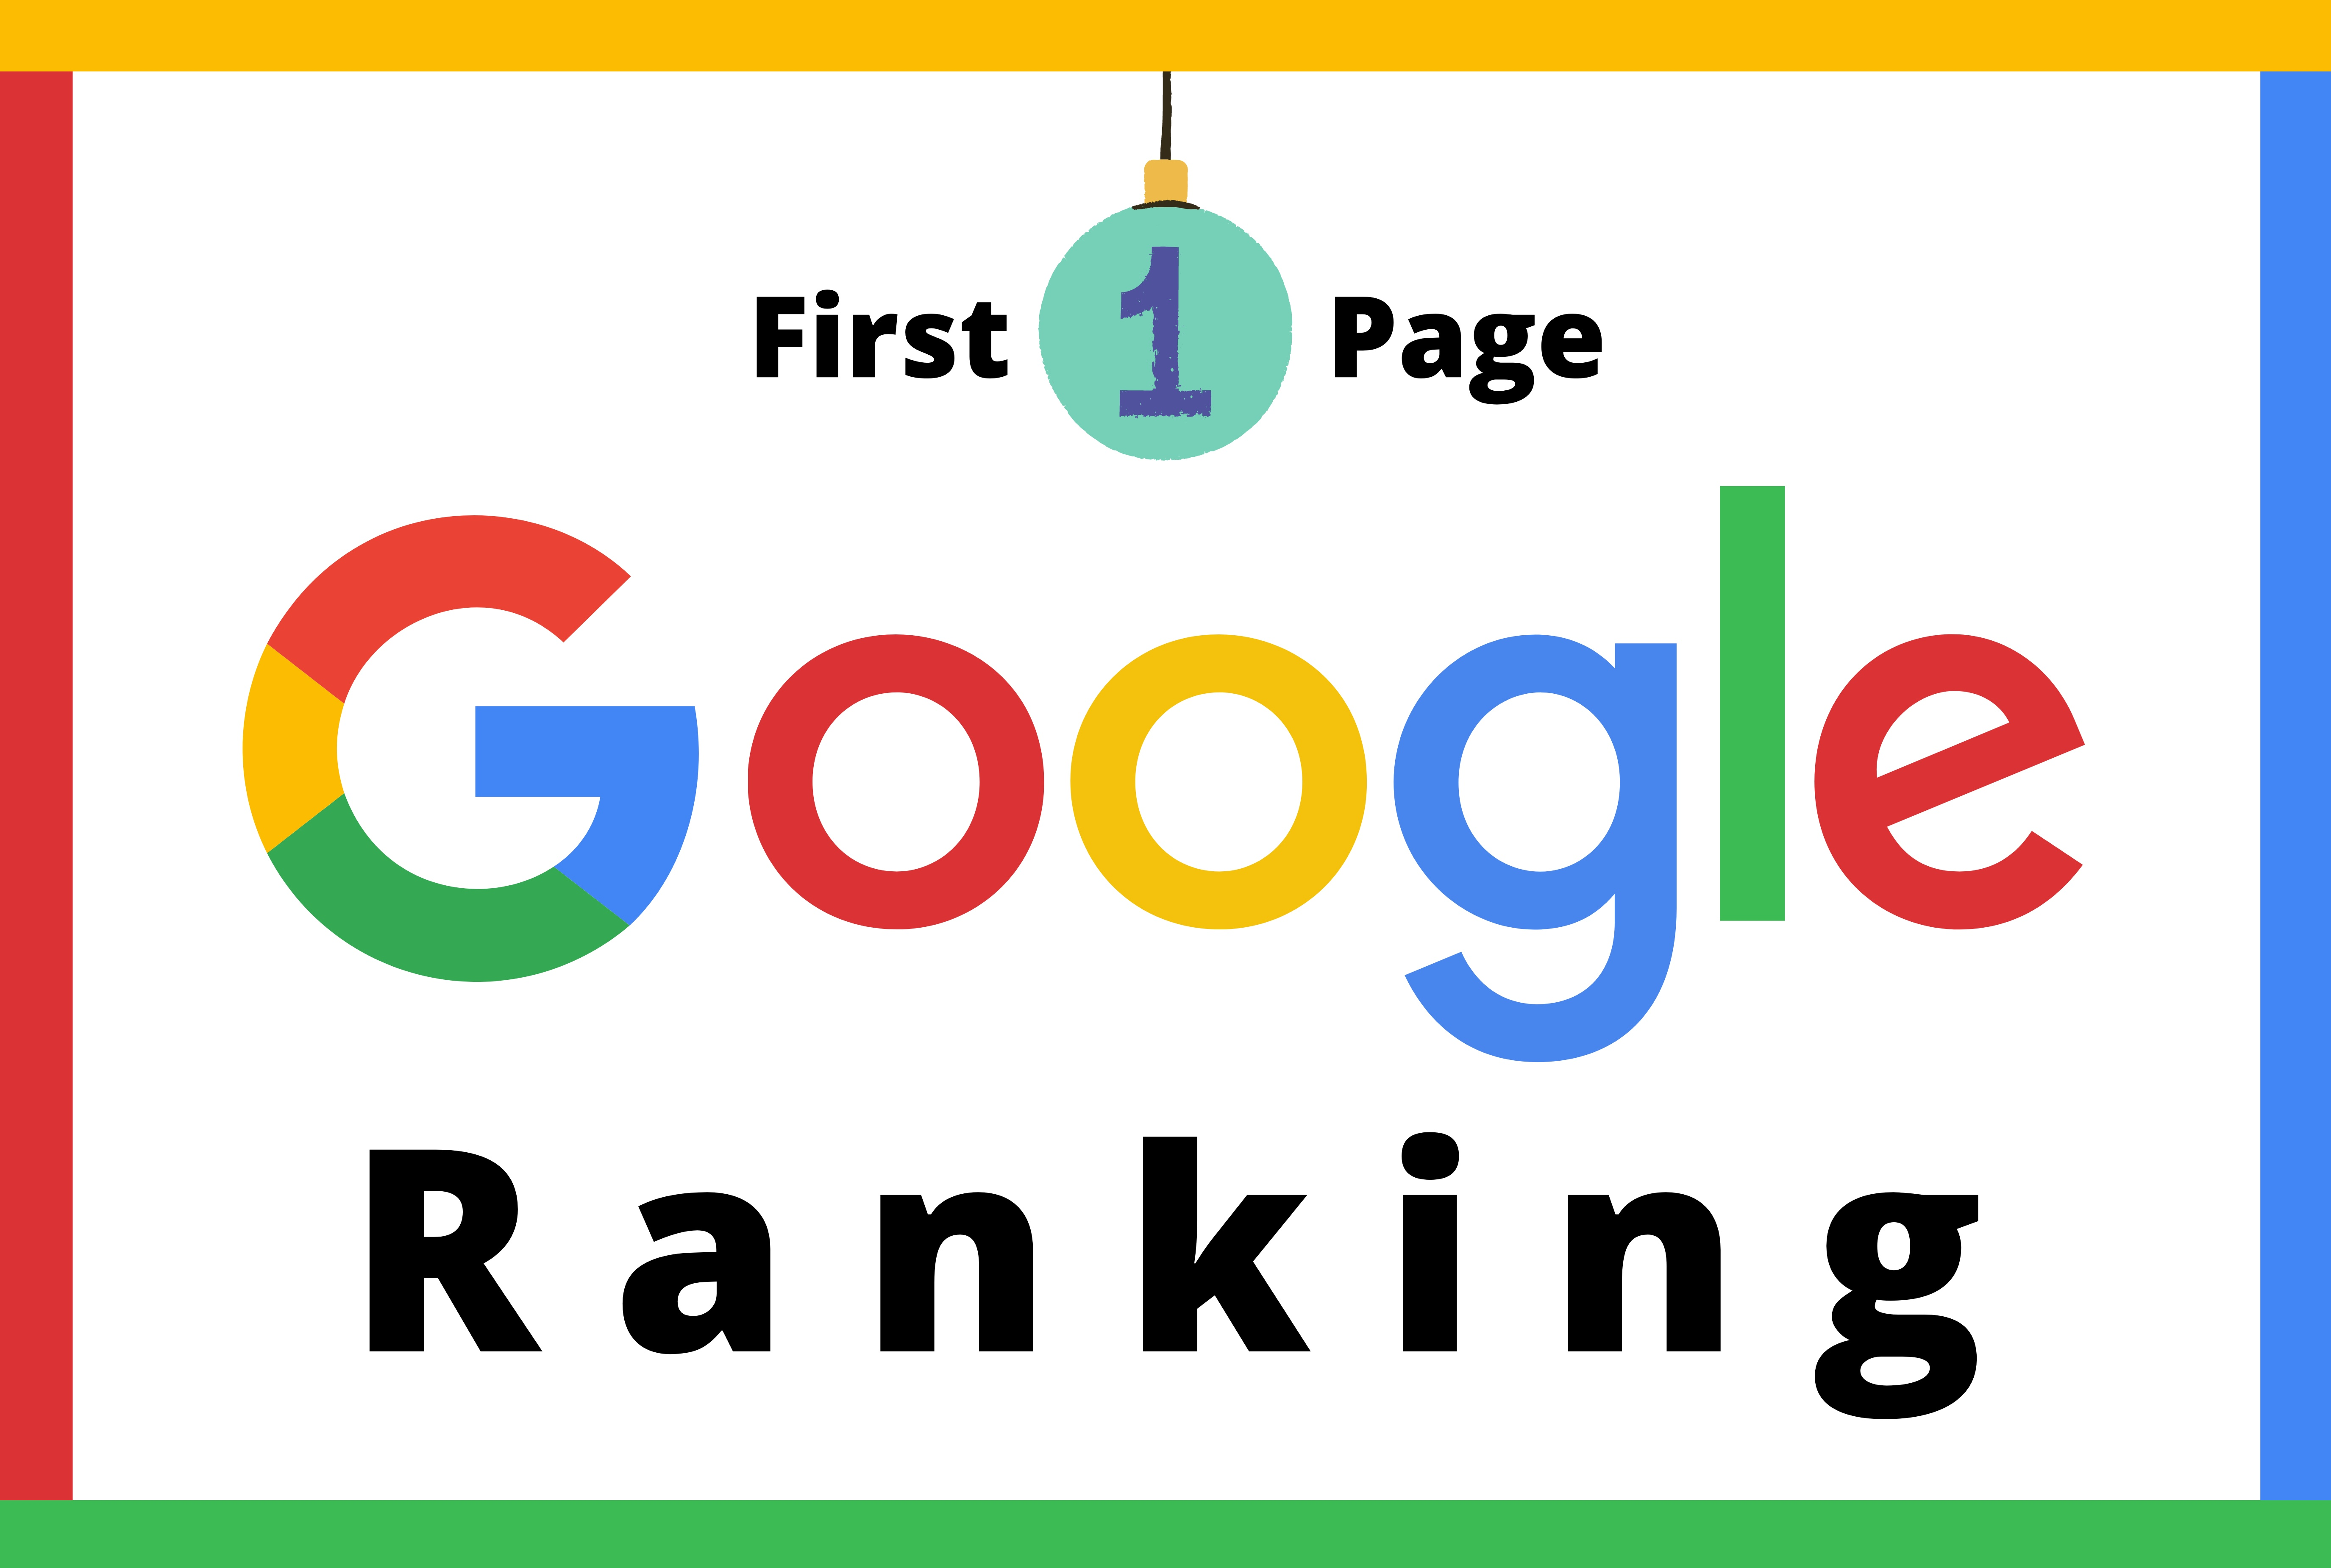 Guaranteed Google First Page Ranking your website with three keyword